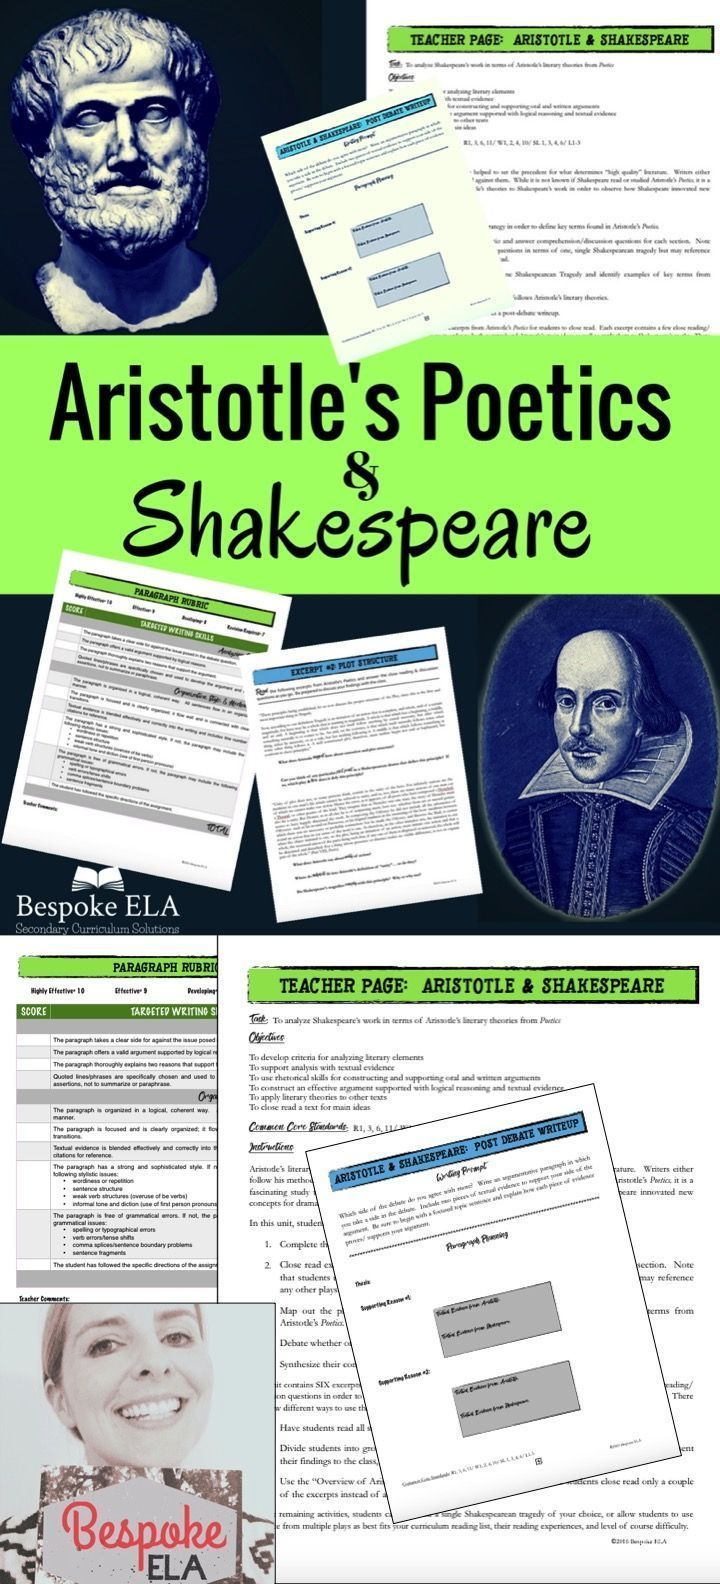 This lesson from Bespoke ELA takes students through a close reading of excerpts from Aristotle's Poetics and then has them apply Aristotle's literary theories to Shakespeare's tragedies. This is an excellent addition to any Shakespearean unit-- Macbeth,